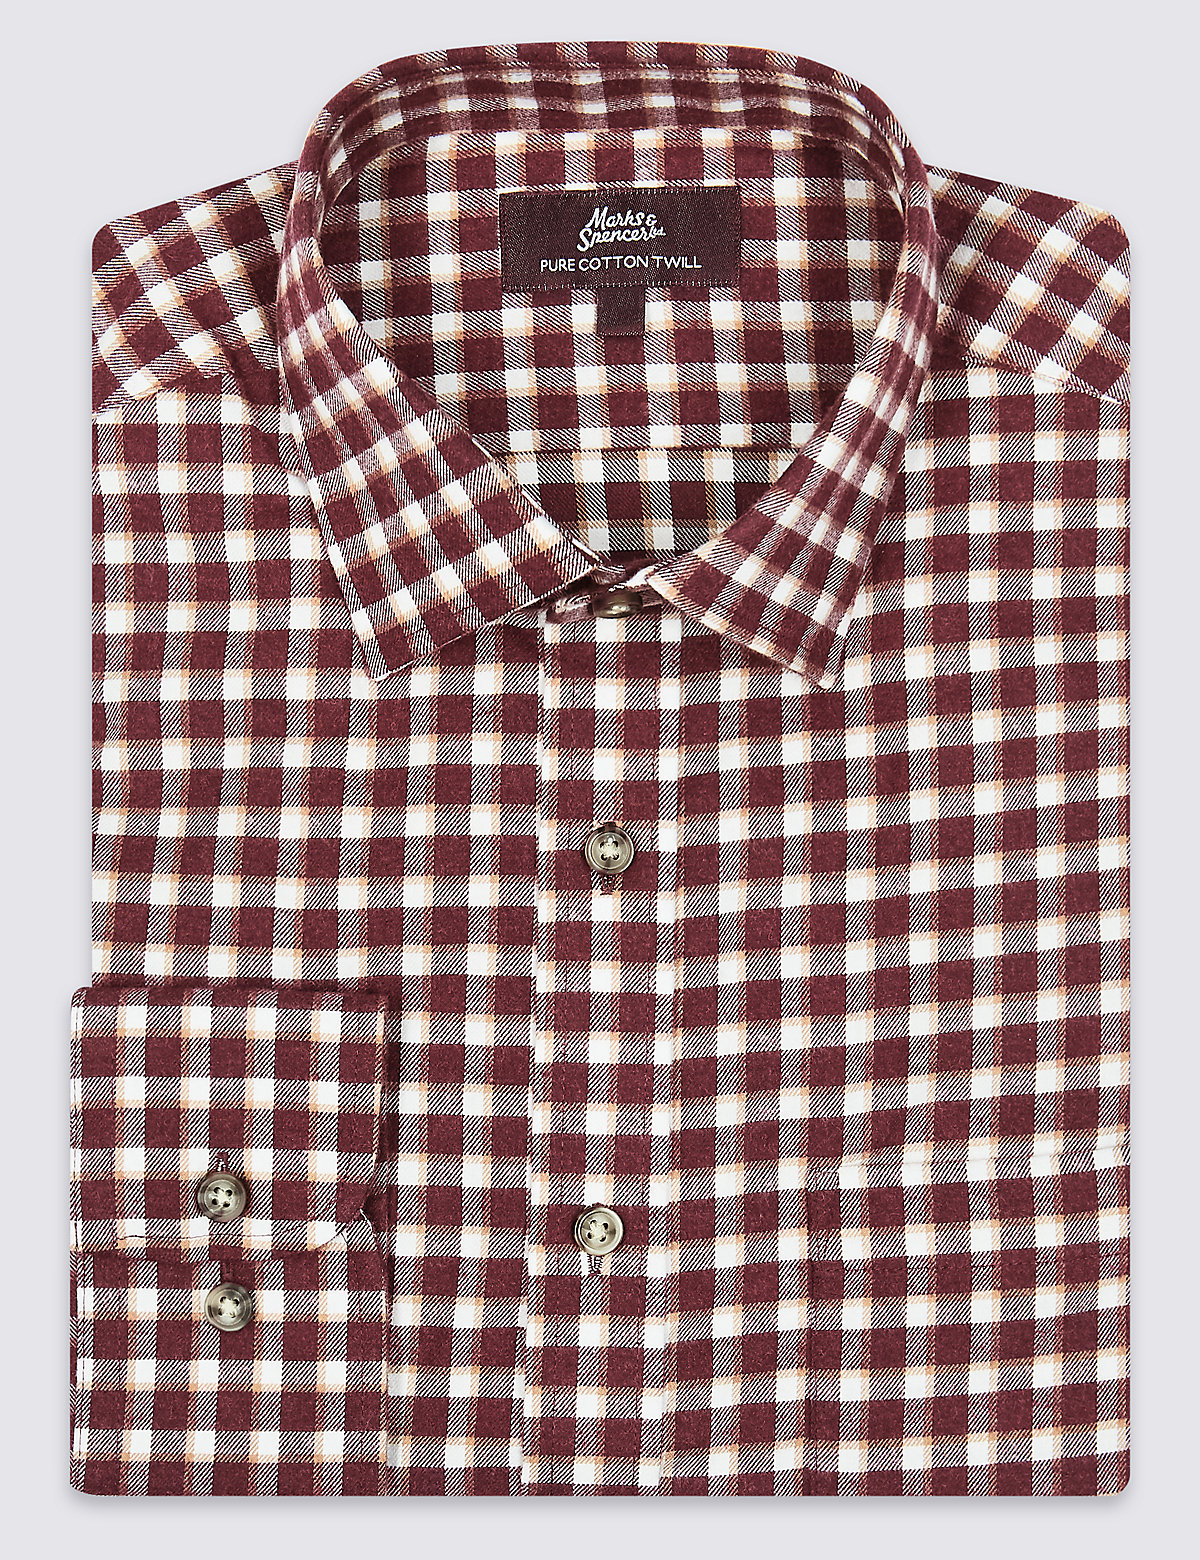 Marks & Spencer Burgundy Mix Pure Cotton Twill Regular Fit Shirt